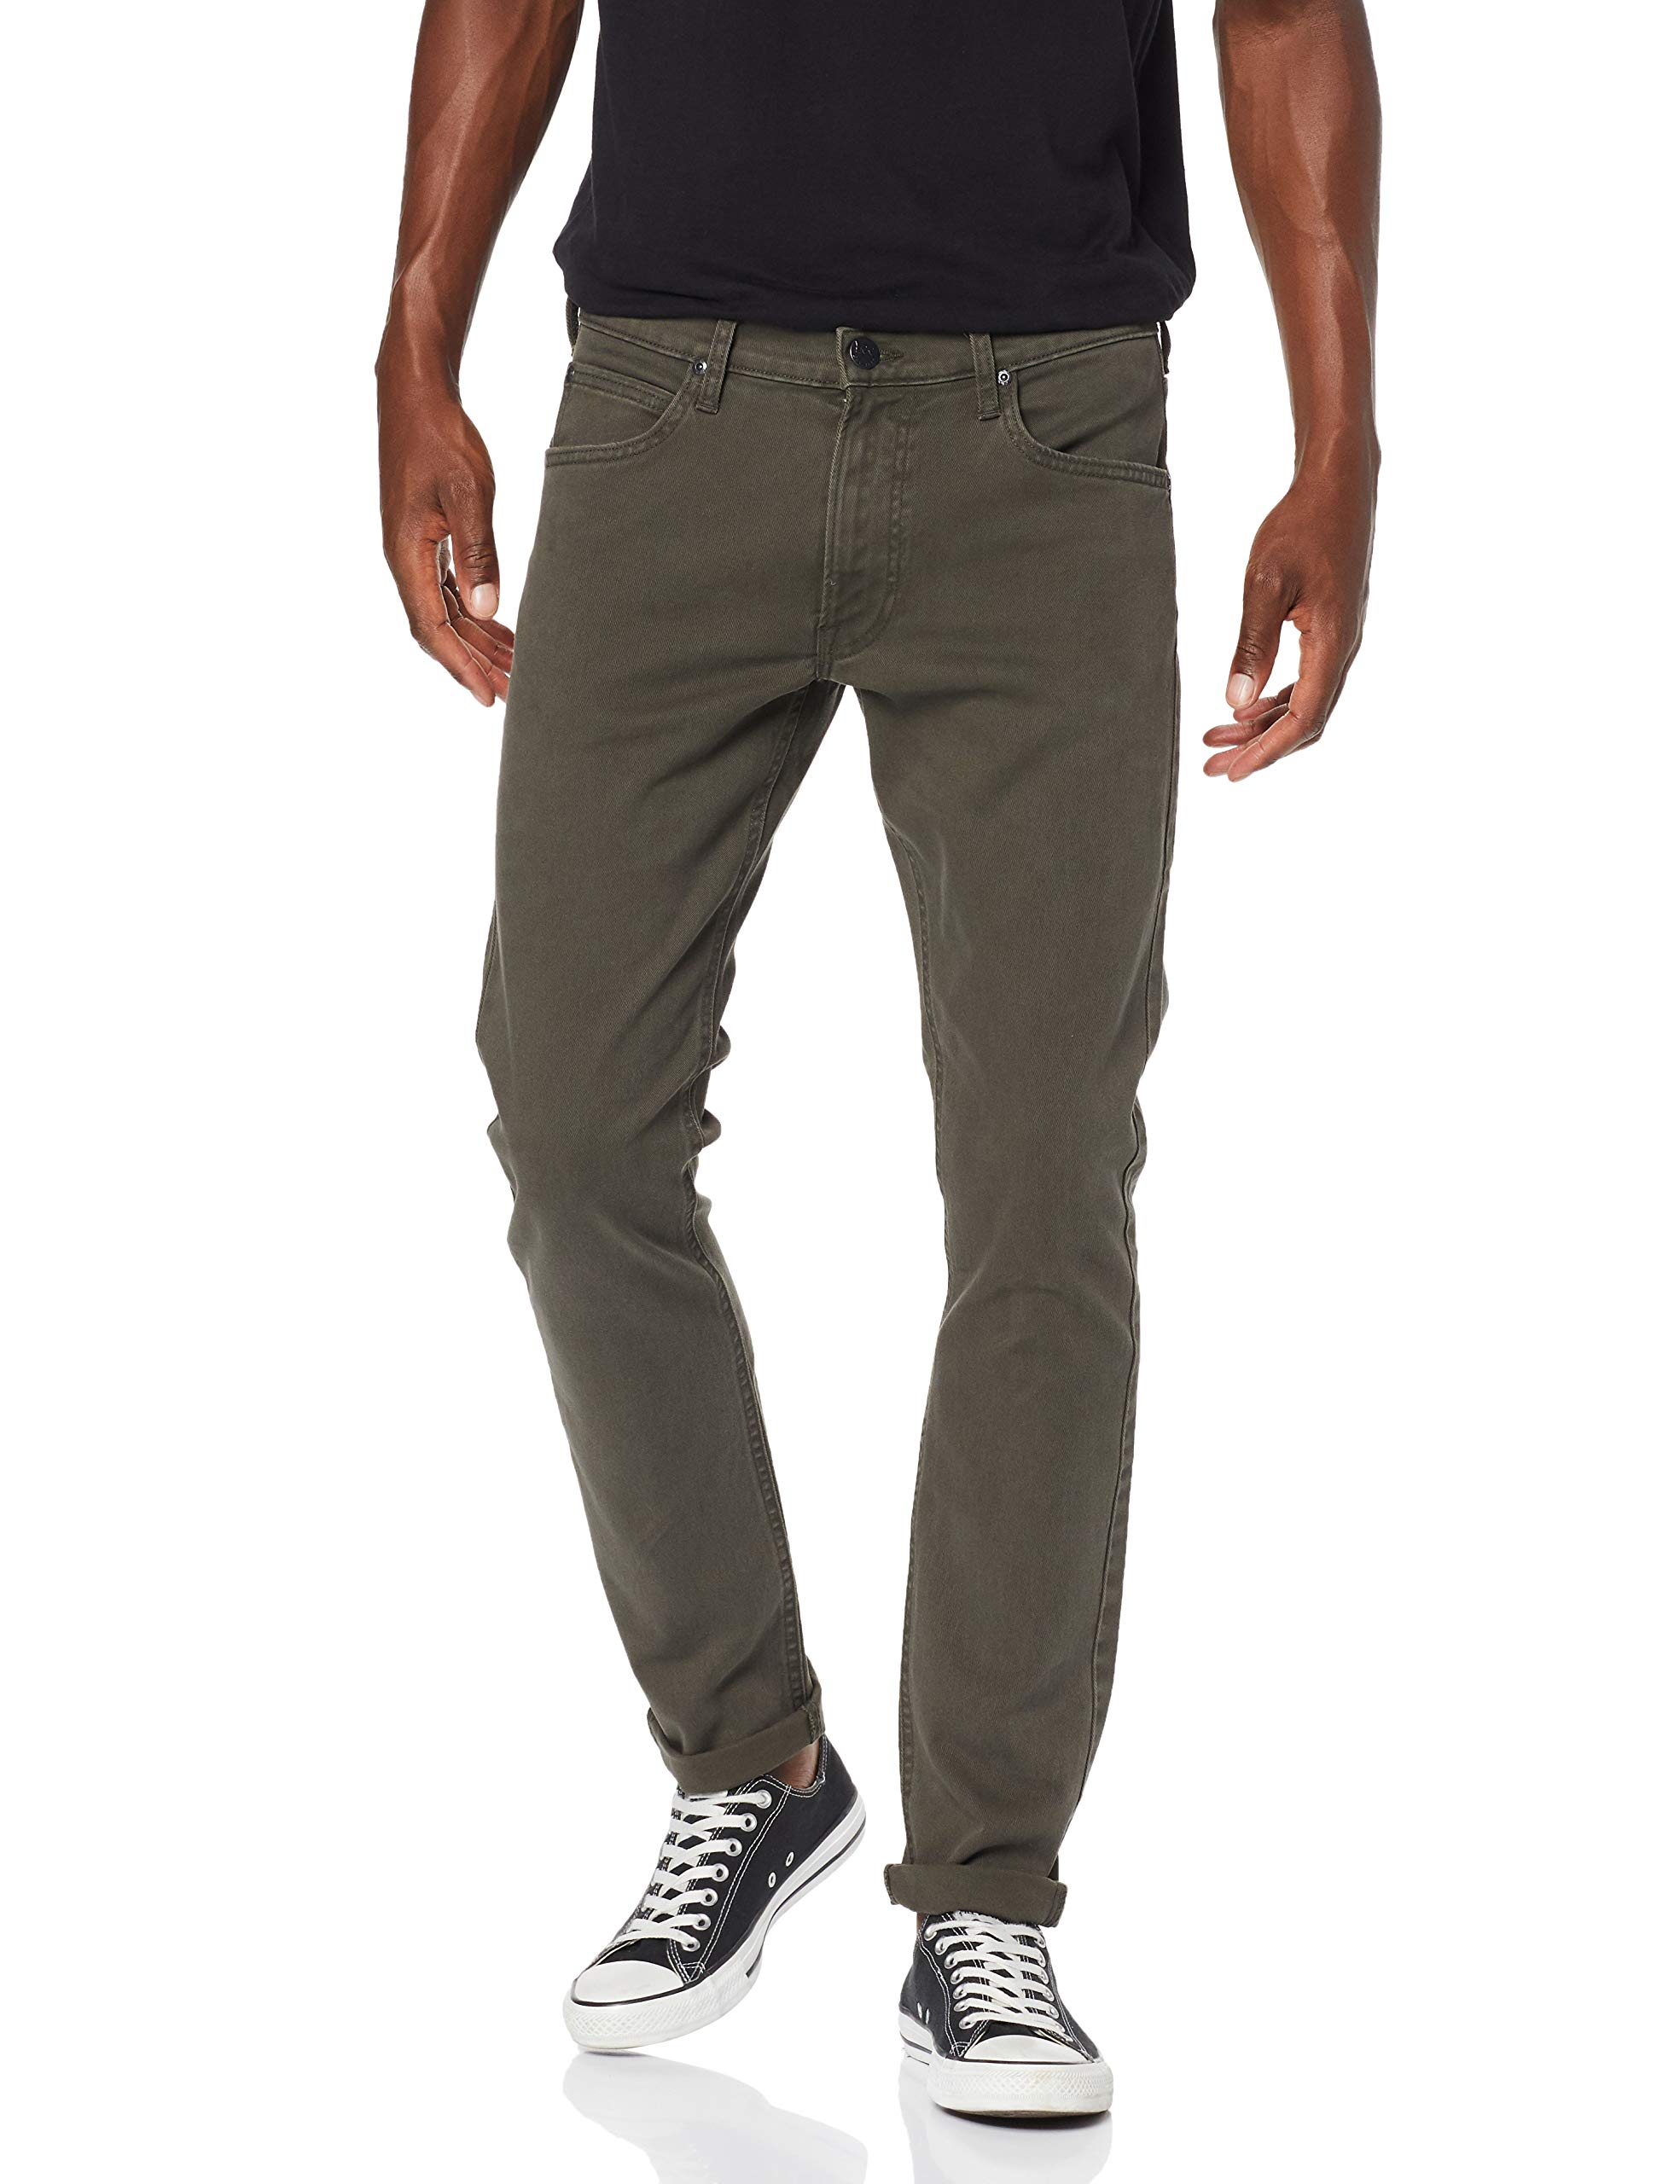 96W31 Lee Night 34Homme Fabricant31 Luke PantalonVertforest l34taille mw8nN0